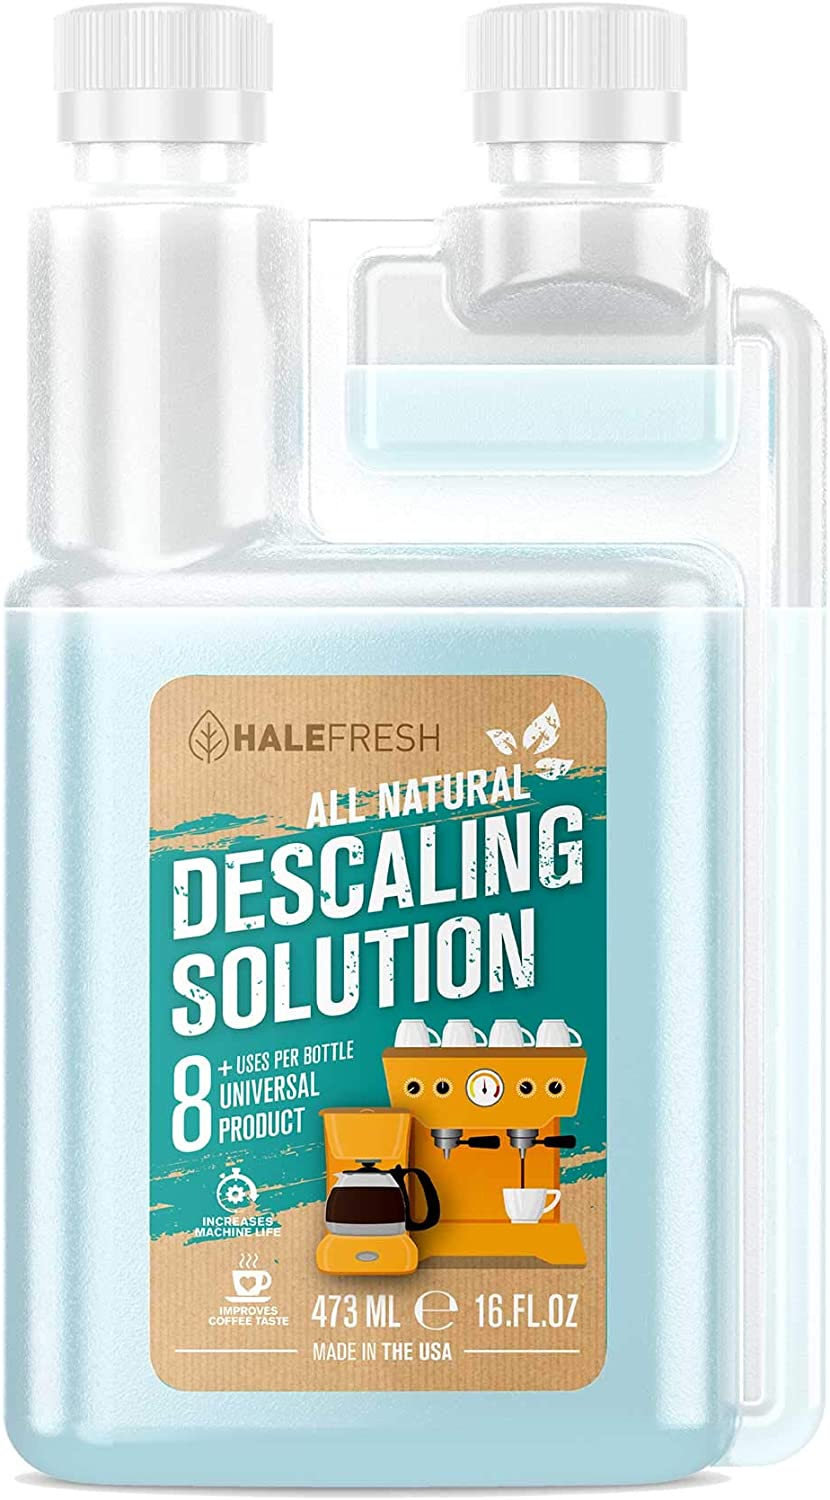 Descaling Solution Coffee Maker Cleaner - Simple All Natural 8 Uses Per Bottle - Universal for Keurig, Ninja, Nespresso, Gagia, Mr Coffee, and Drip, Coffee and Espresso Machines 71fe3ugCguL